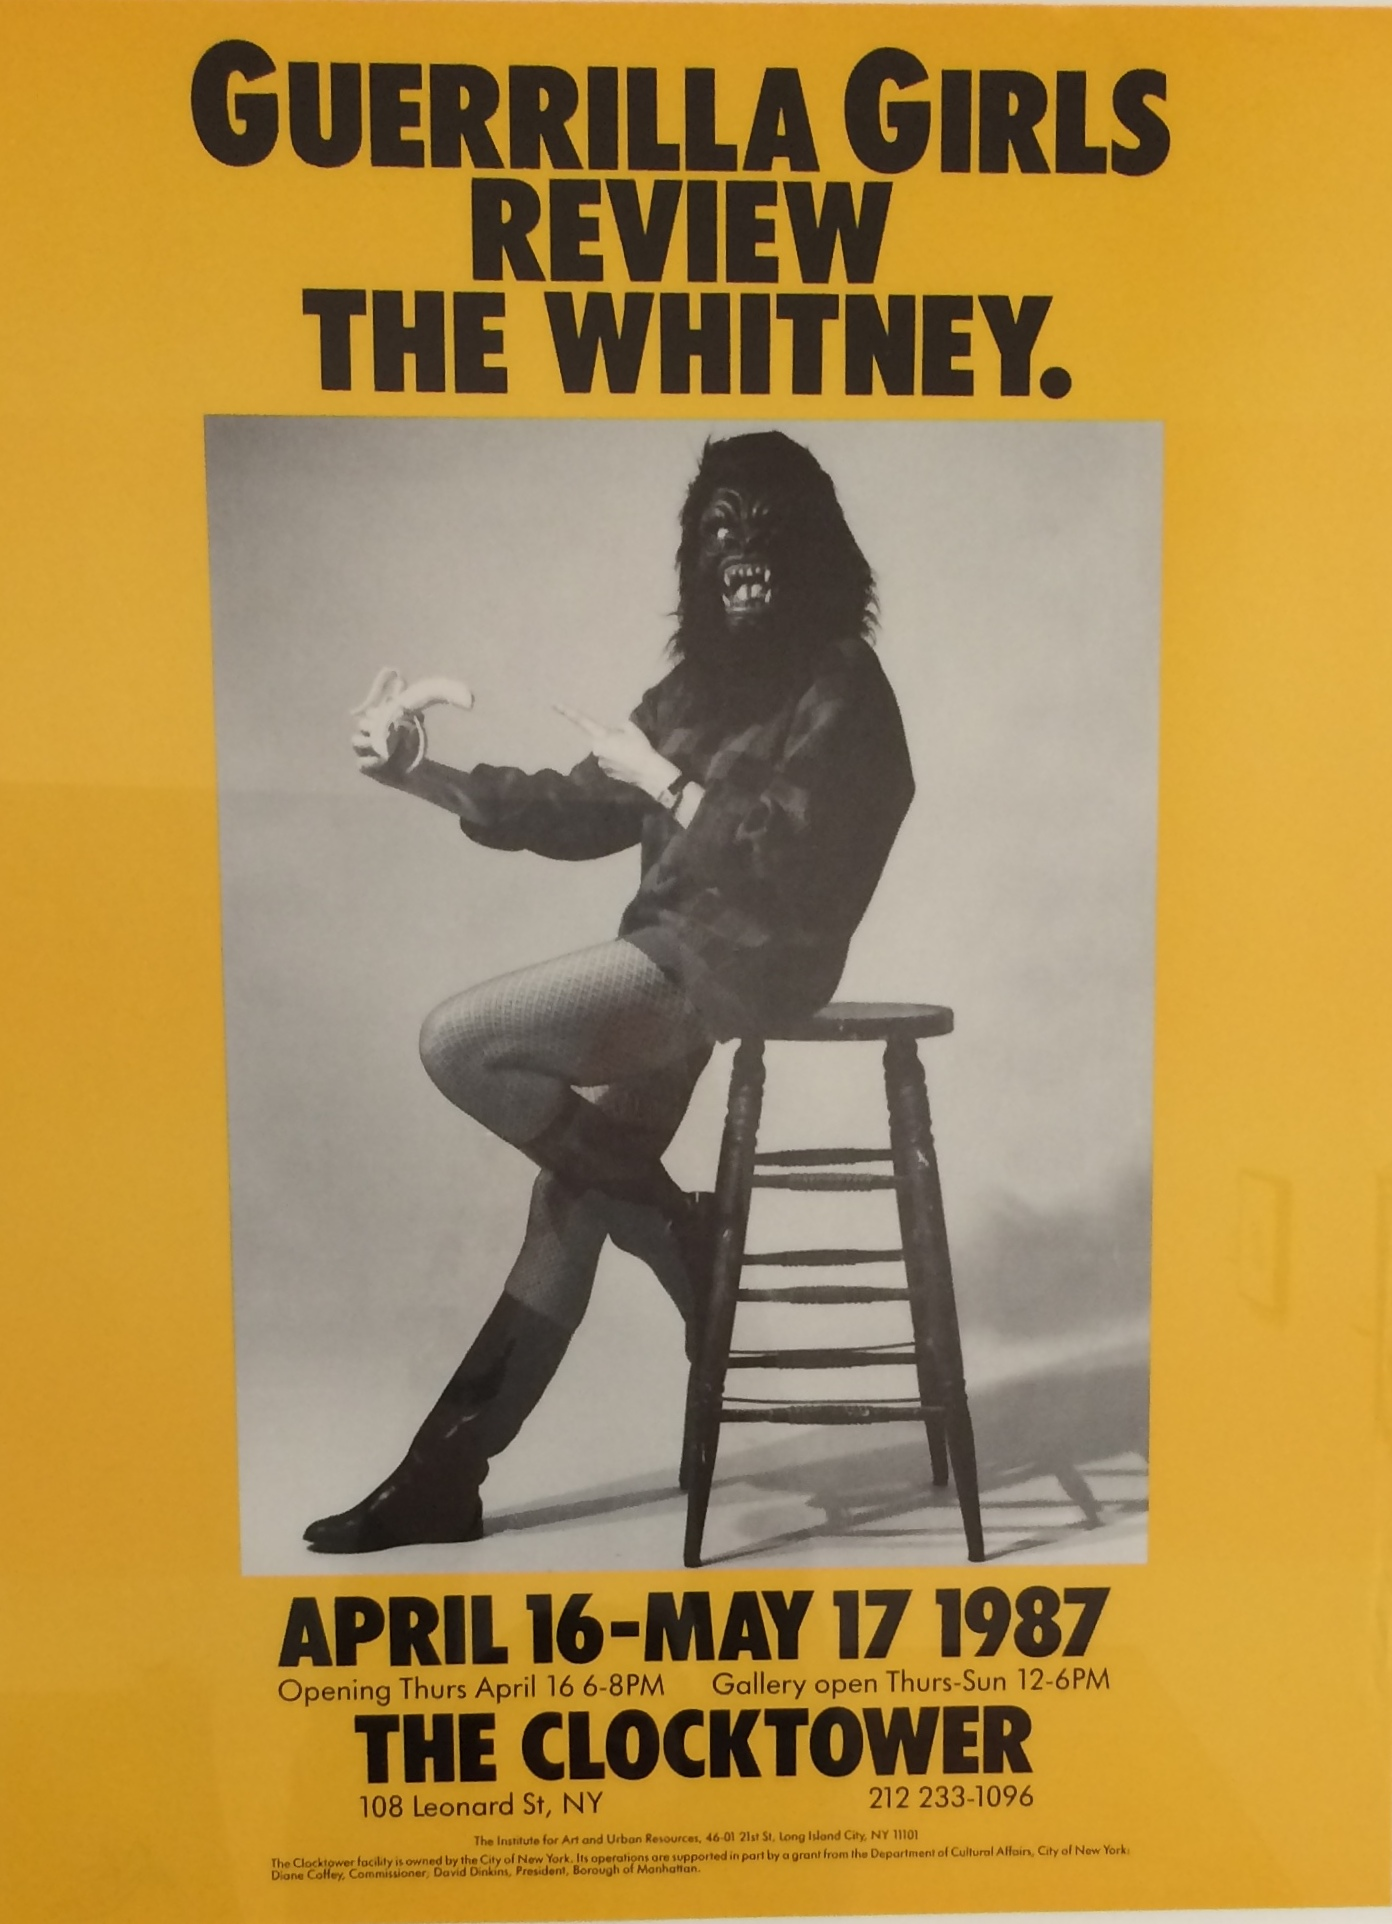 Guerrilla Girls (American, established 1985), Guerrilla Girls Review the Whitney (Clocktower Show), from the portfolio Guerrilla Girls Talk Back: The First Five Years, 1984–89. Offset lithograph. Milwaukee Art Museum, Purchase, with funds from Peggy Daum Judge Bequest M1993.302.15. Photo credit: Tina Schinabeck. © Guerrilla Girls.